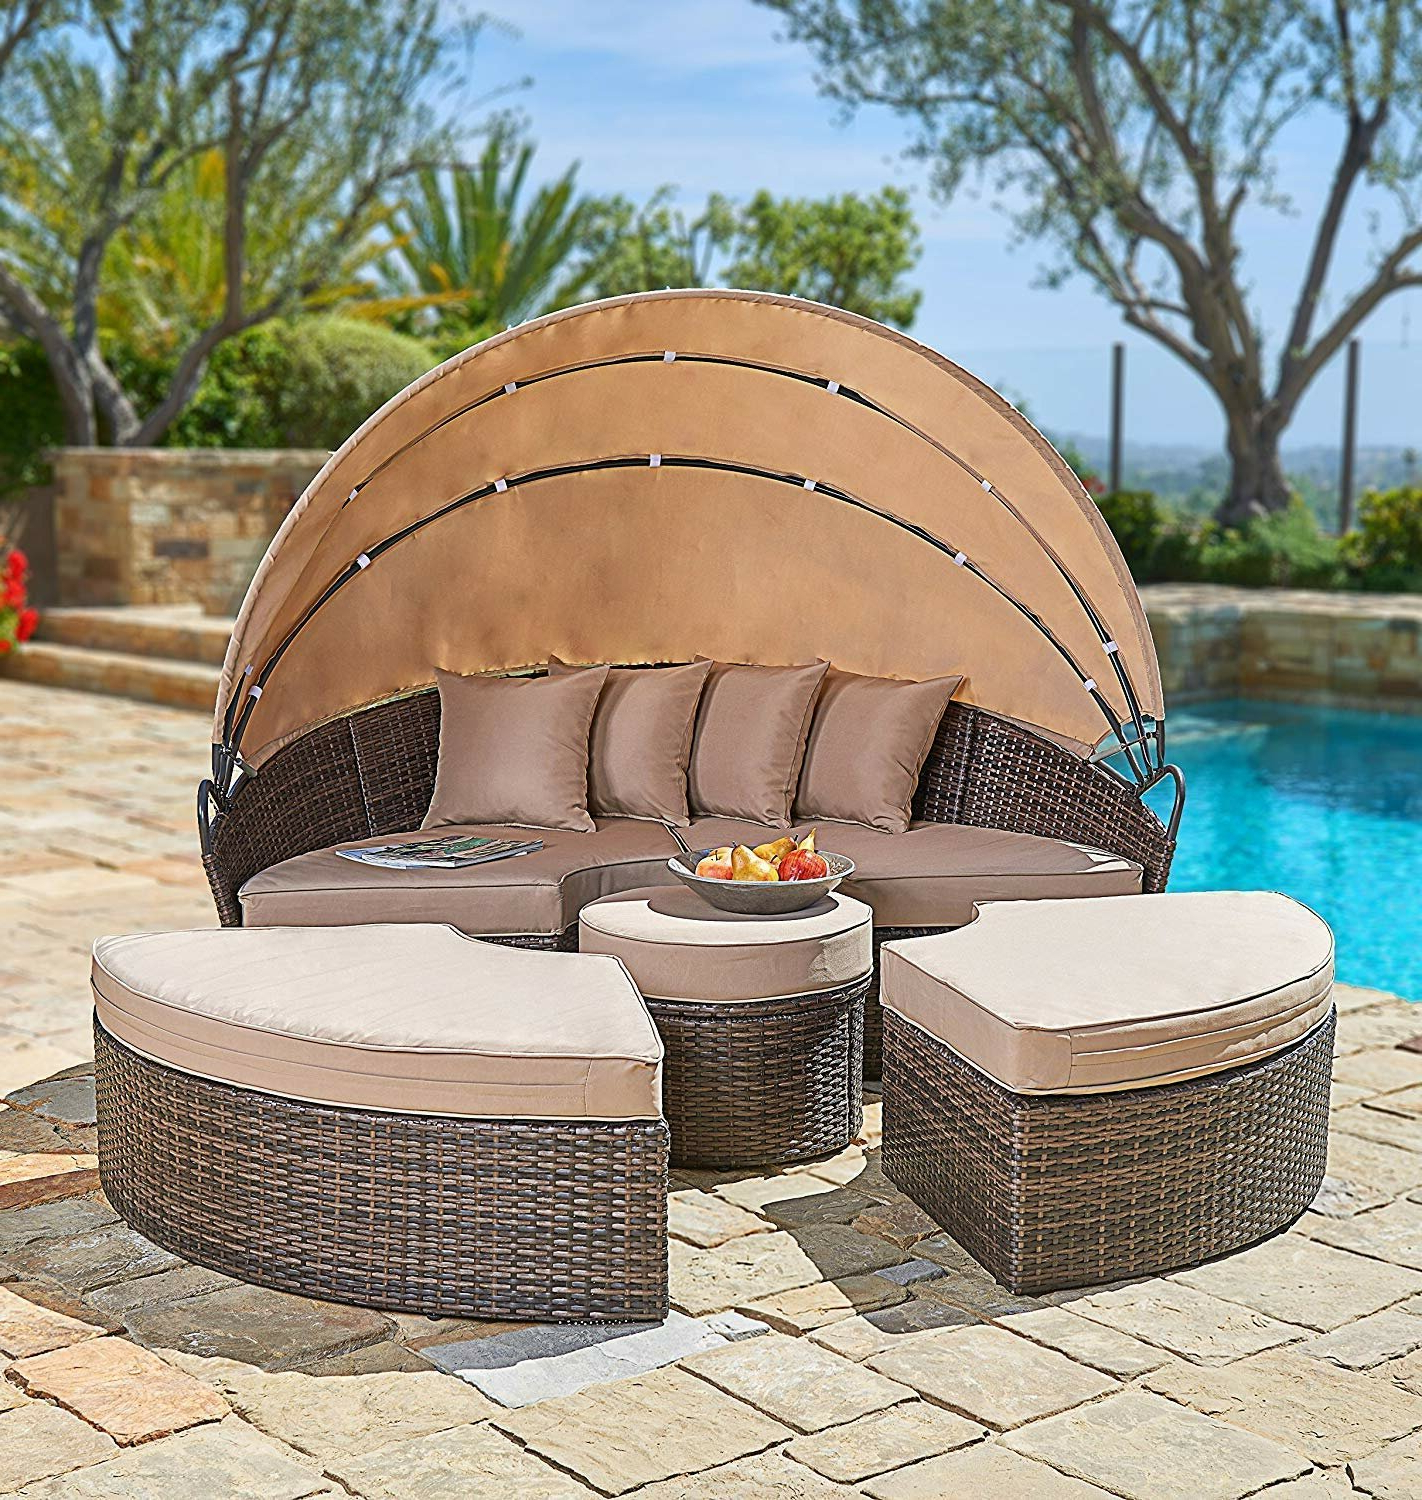 Most Popular Behling Canopy Patio Daybed With Cushions Pertaining To Lavina Outdoor Patio Daybeds With Cushions (View 9 of 20)